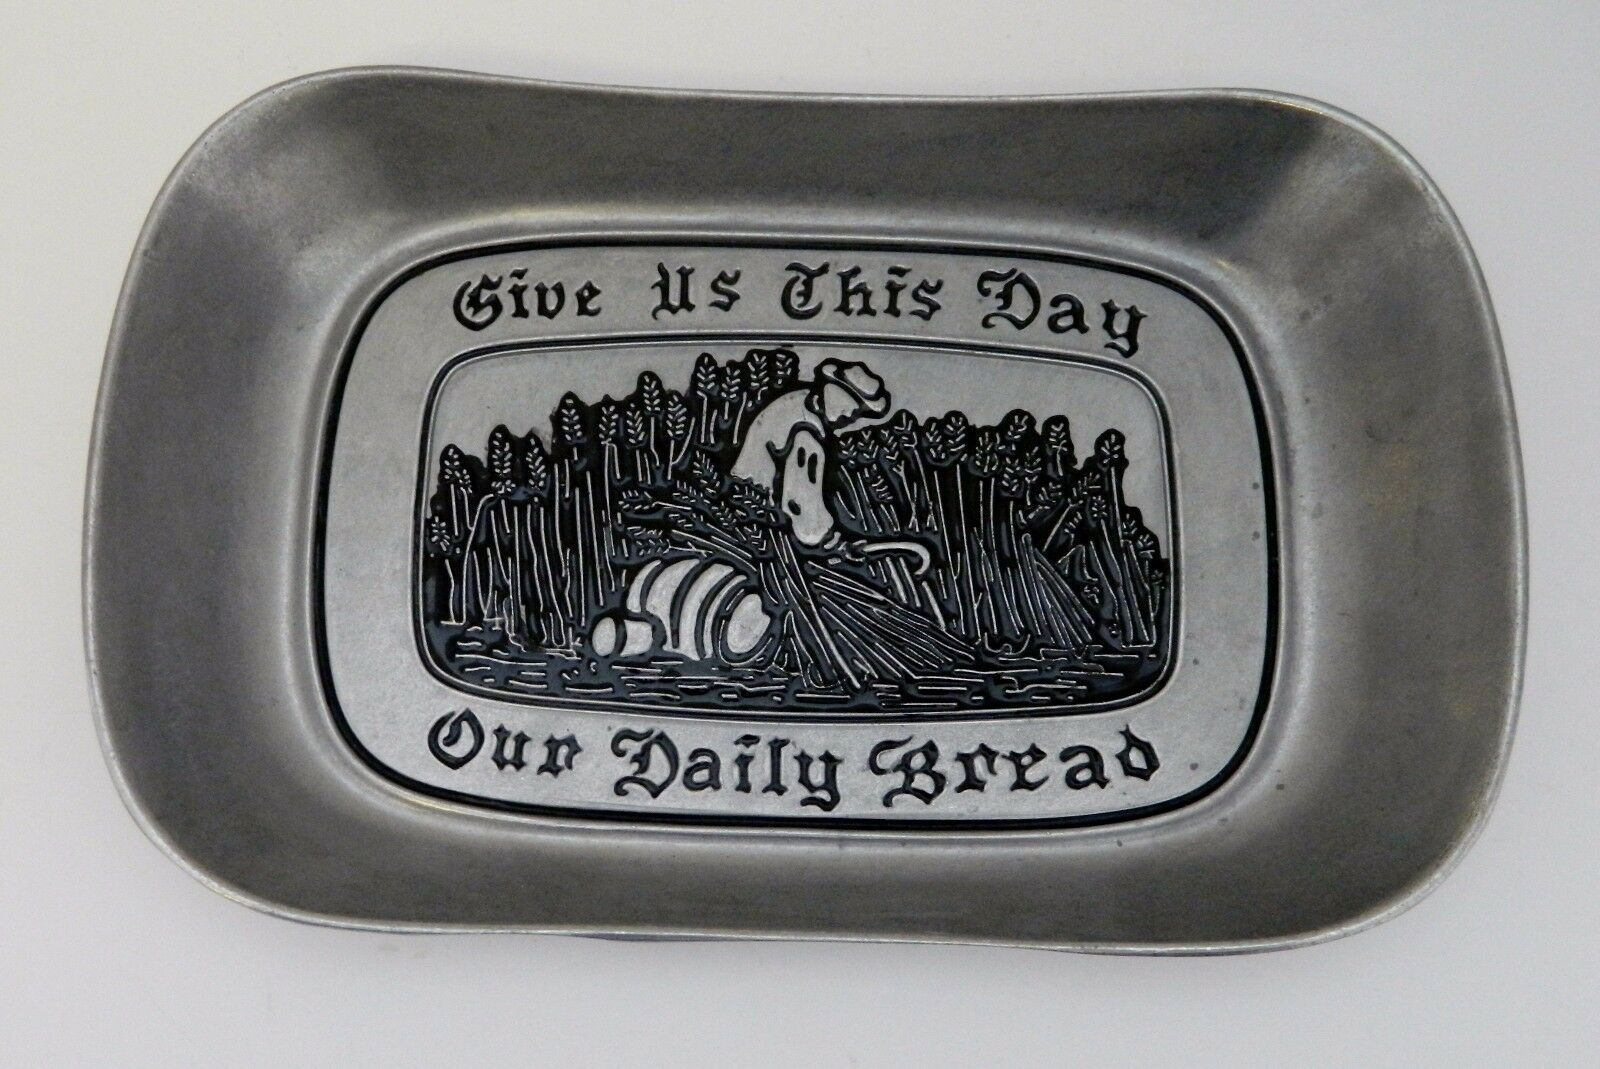 Primary image for Wilton Armetale Pewter Bread Tray Give Us This Day Our Daily Bread Tray RWP VTG